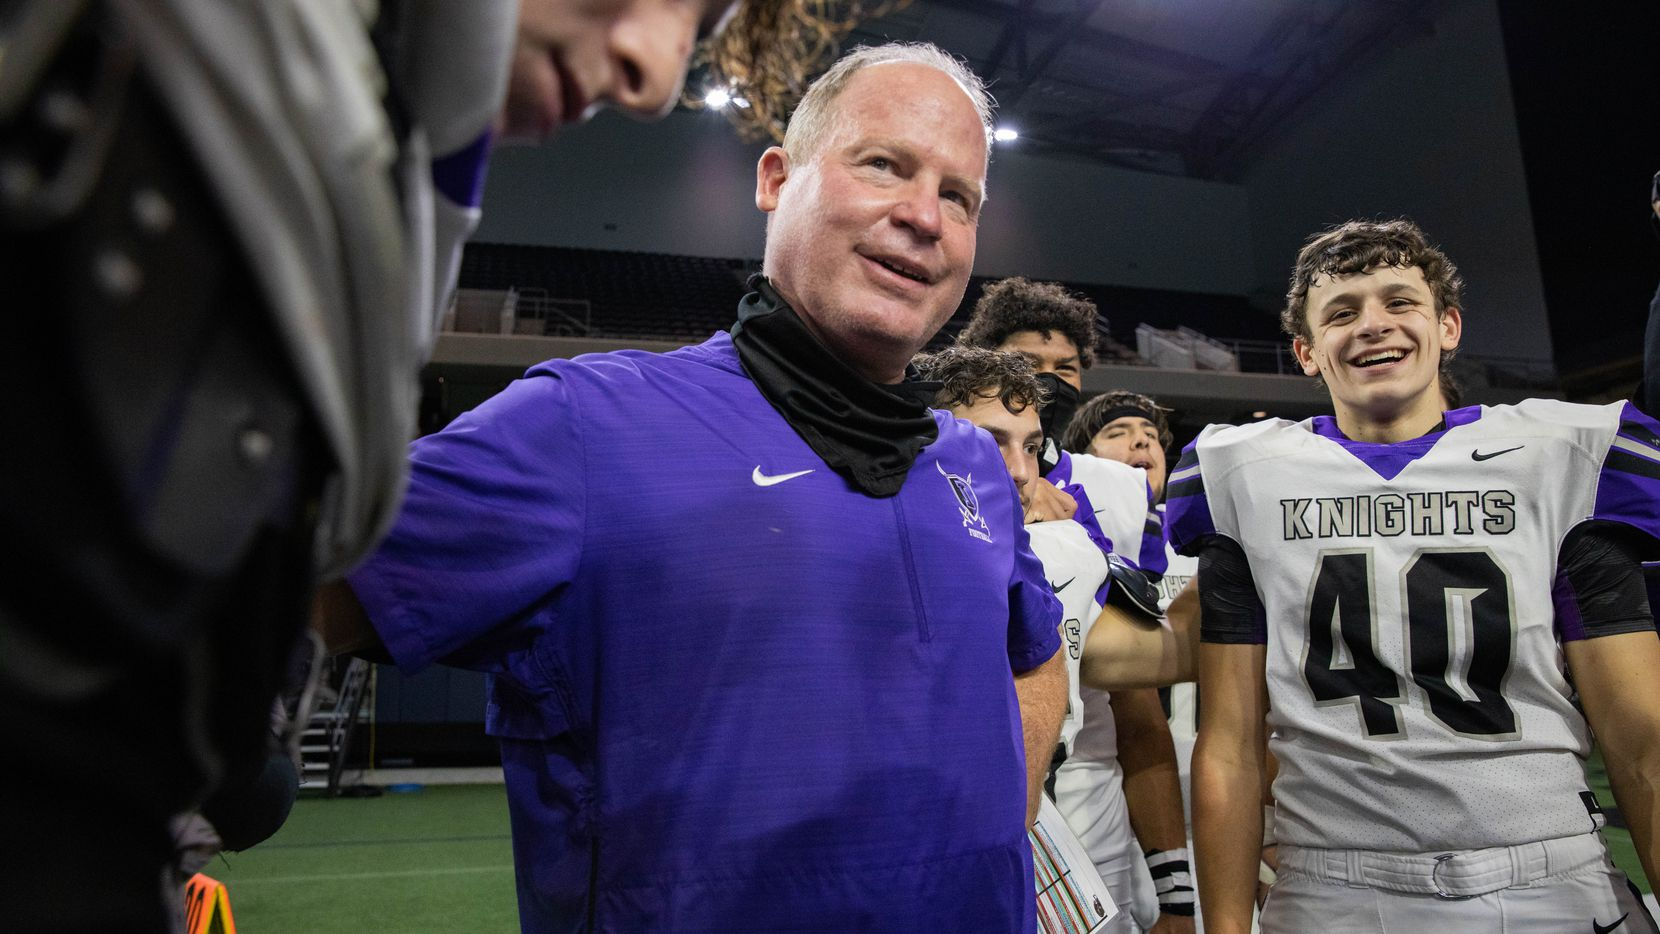 Frisco Independence football coach Kyle Story gathers to pray with his team following their win against Frisco Heritage at the Ford Center at the Star in Frisco on Thursday, Dec. 3, 2020.